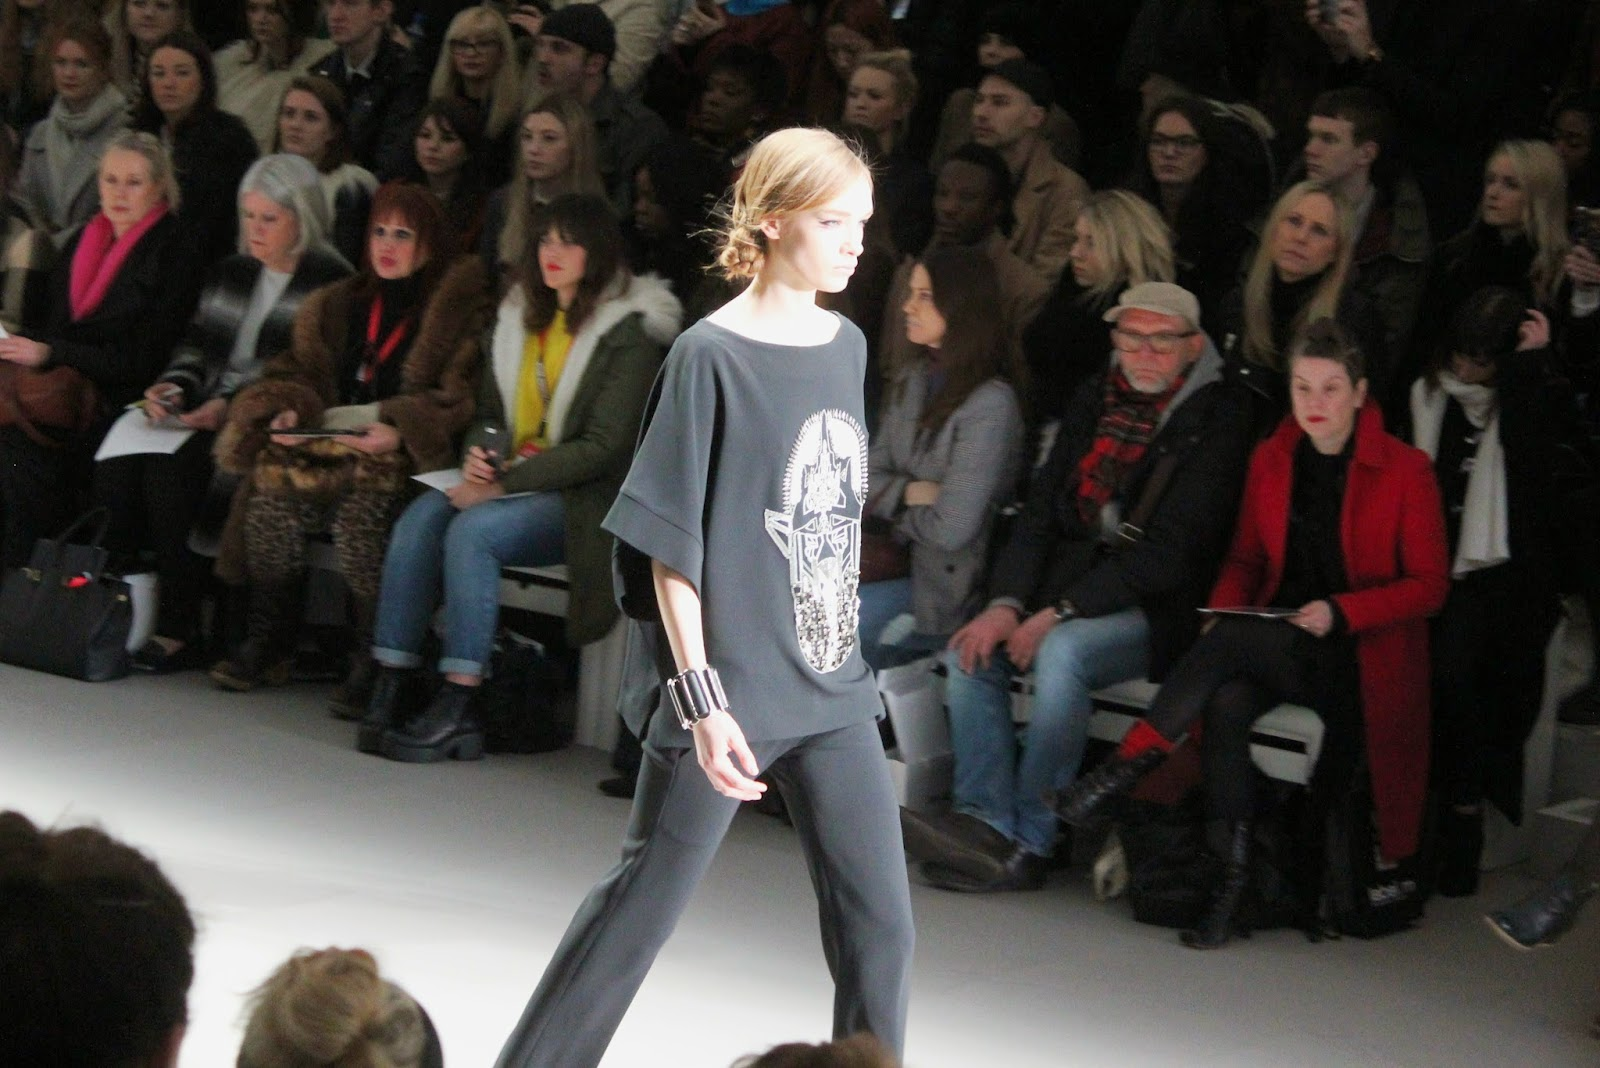 london-fashion-week-lfw-jean-pierre-braganza-catwalk-models-somerset-house